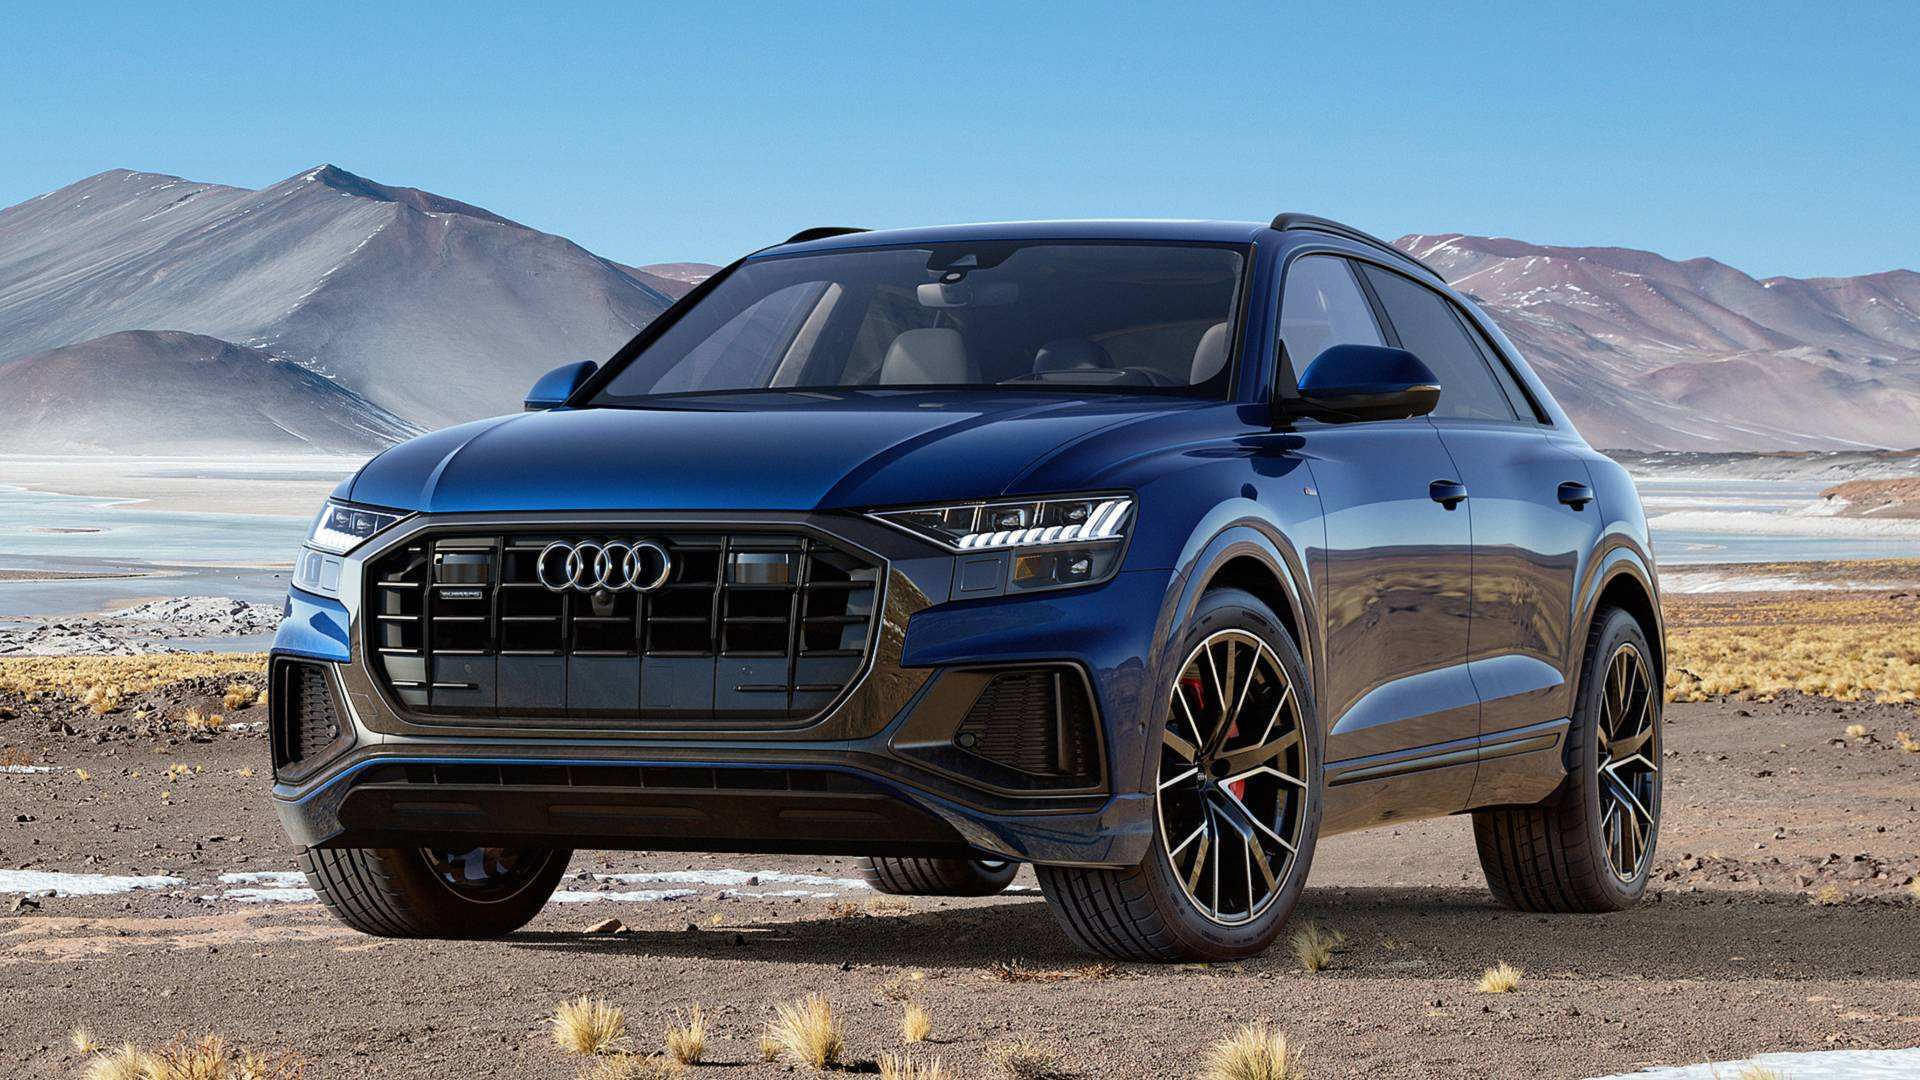 50 All New The Diesel Audi 2019 Price And Review Images by The Diesel Audi 2019 Price And Review